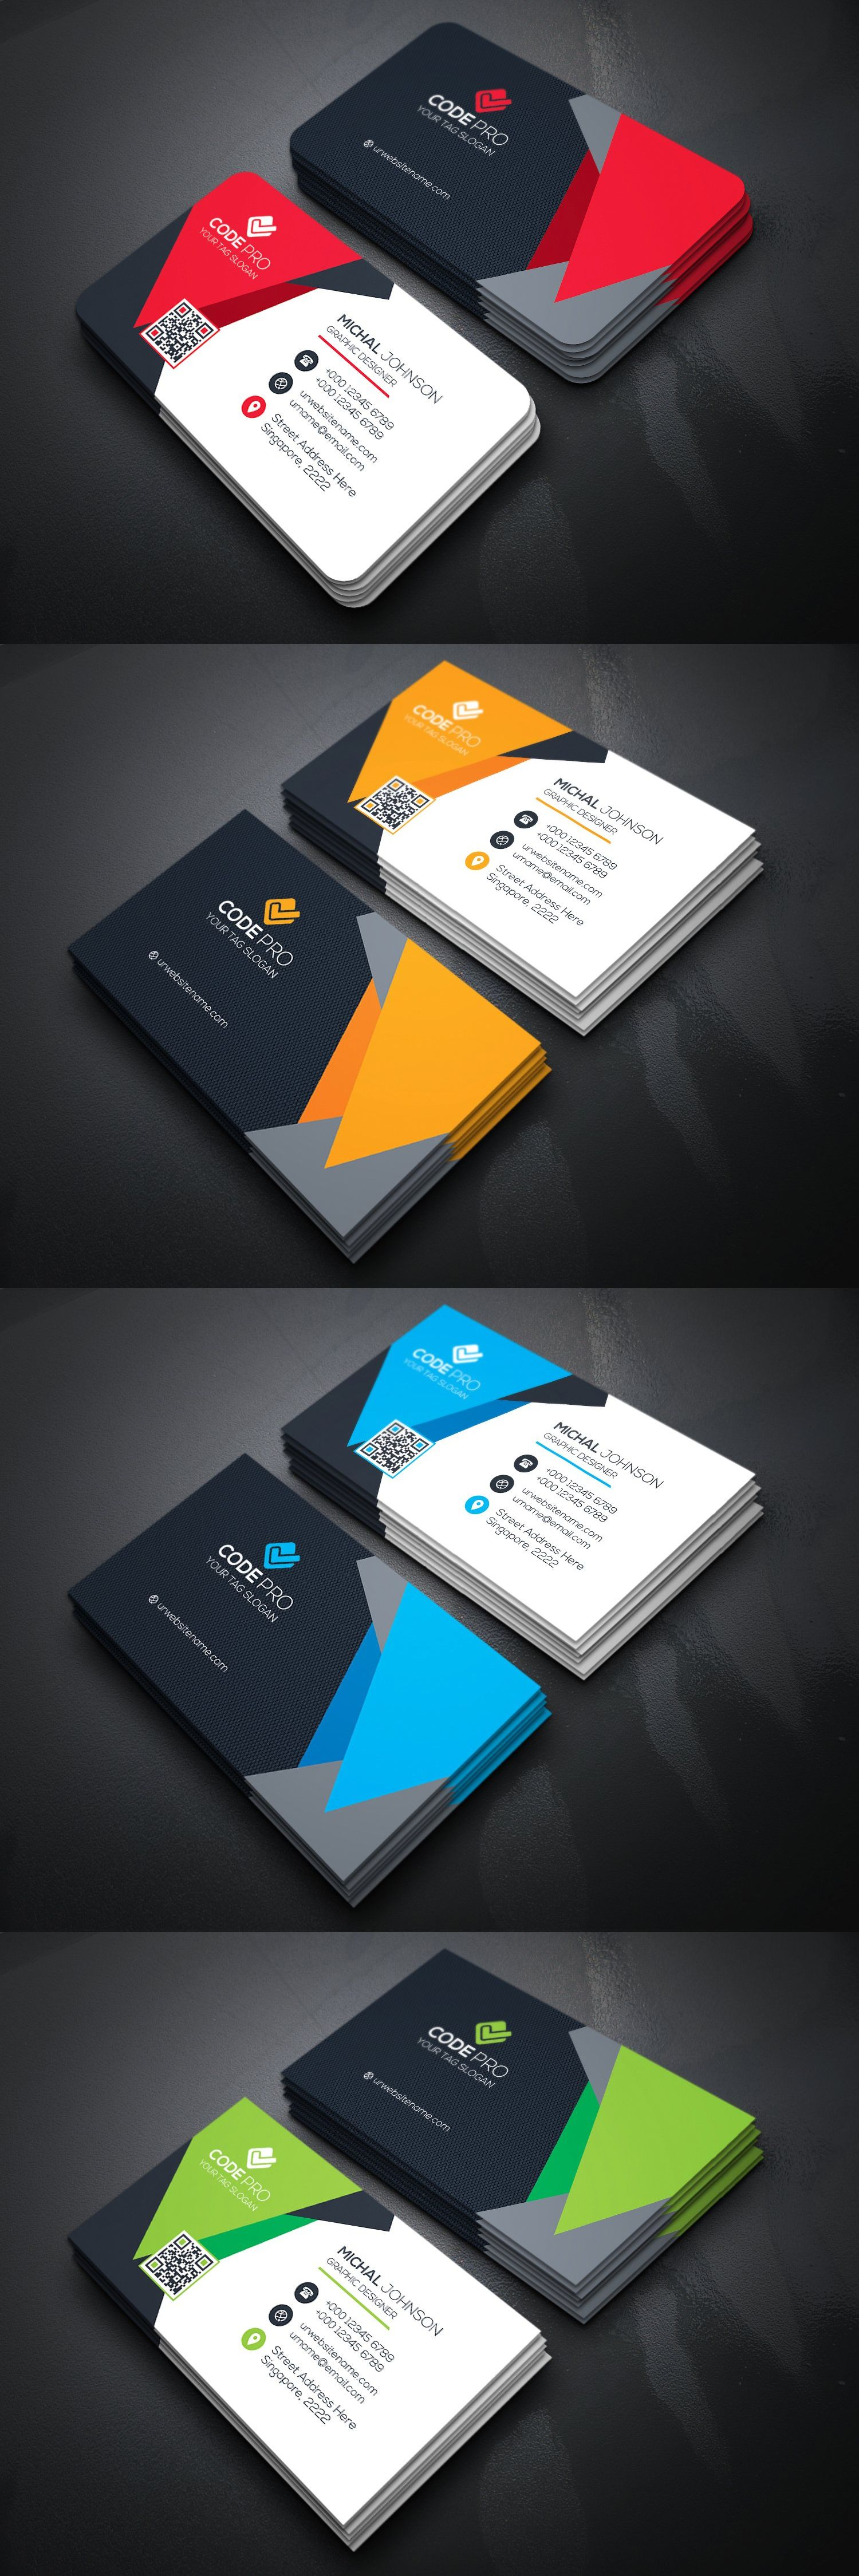 Creative Business Card Templates Psd With Images Business